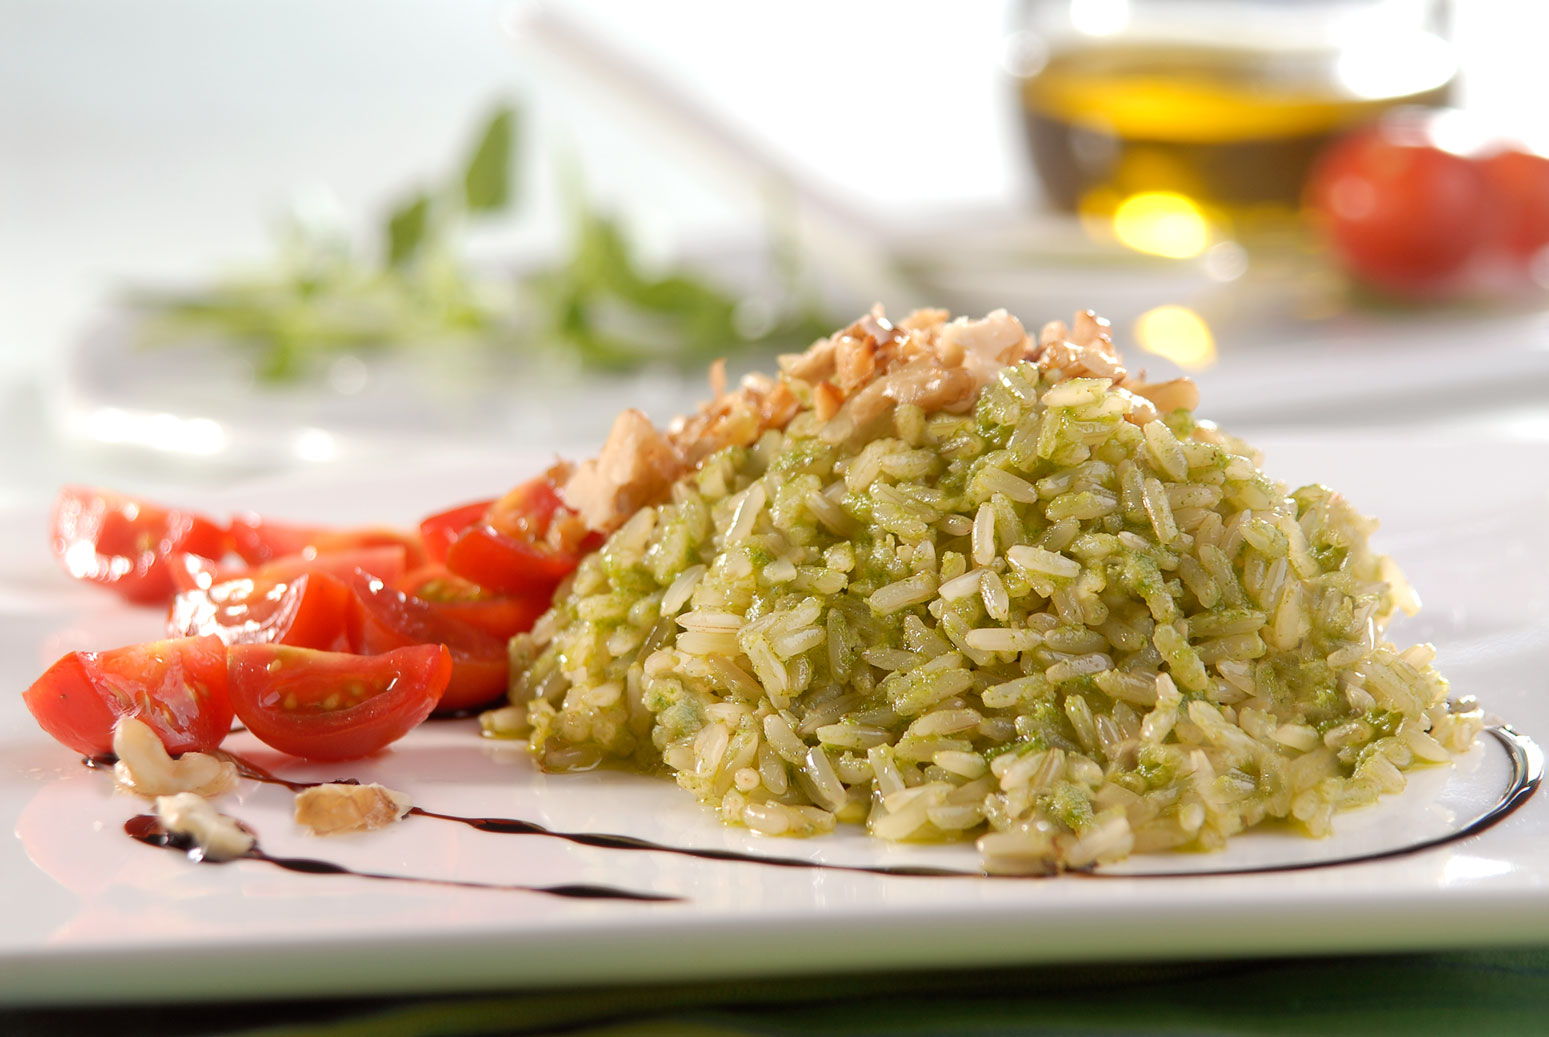 Arroz integral com pesto